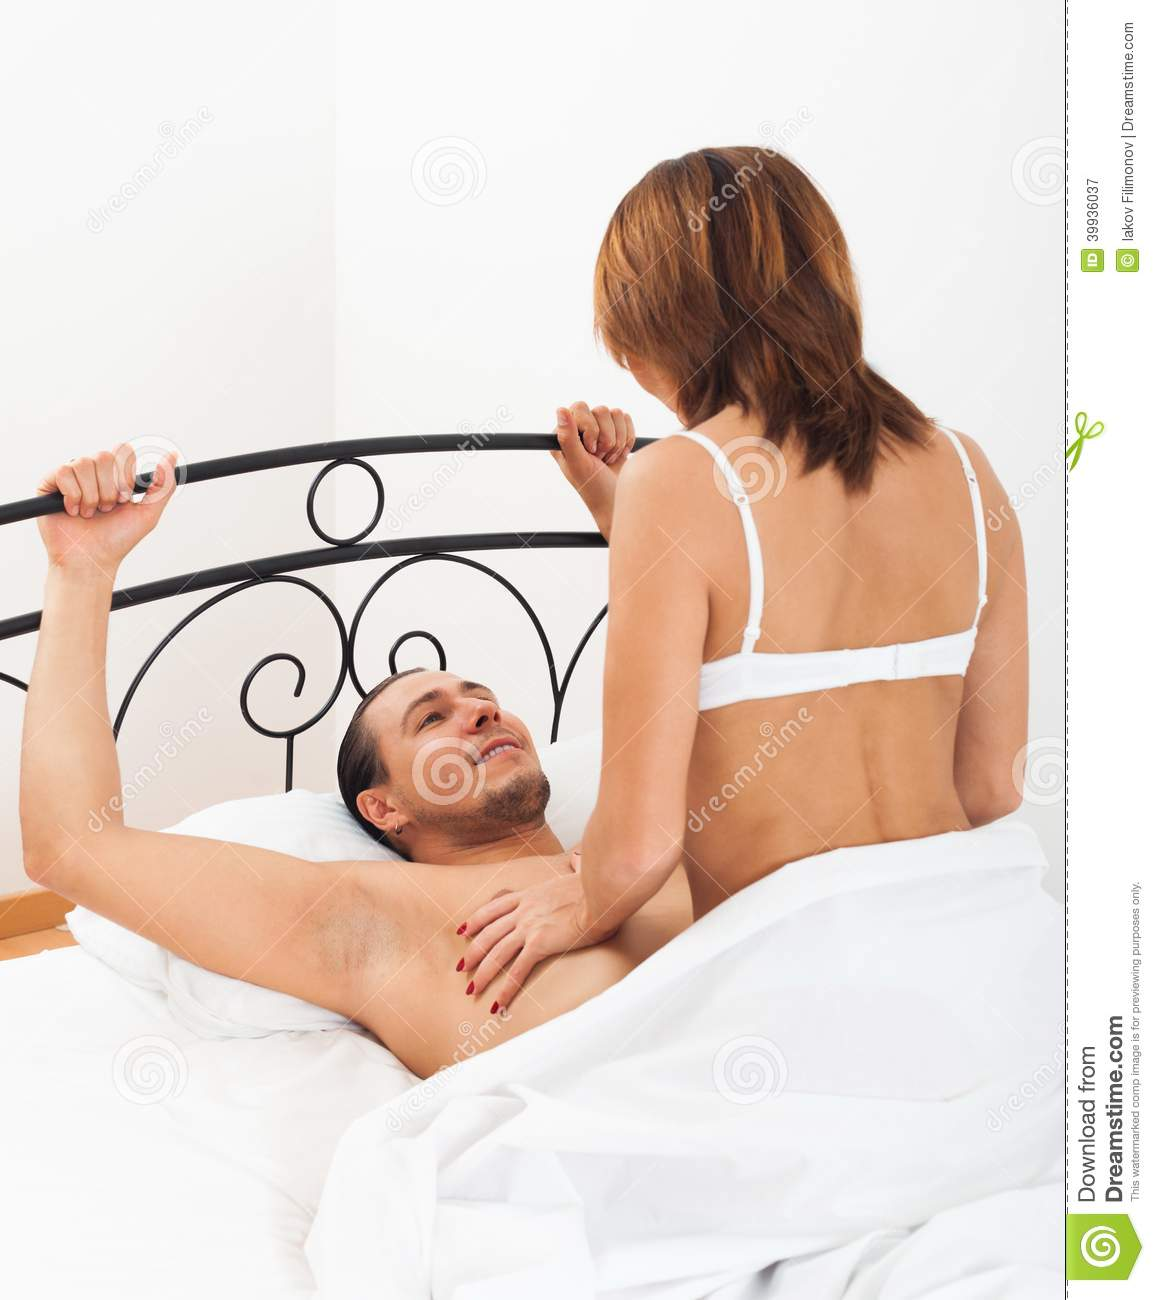 Picture of man and woman doing sex